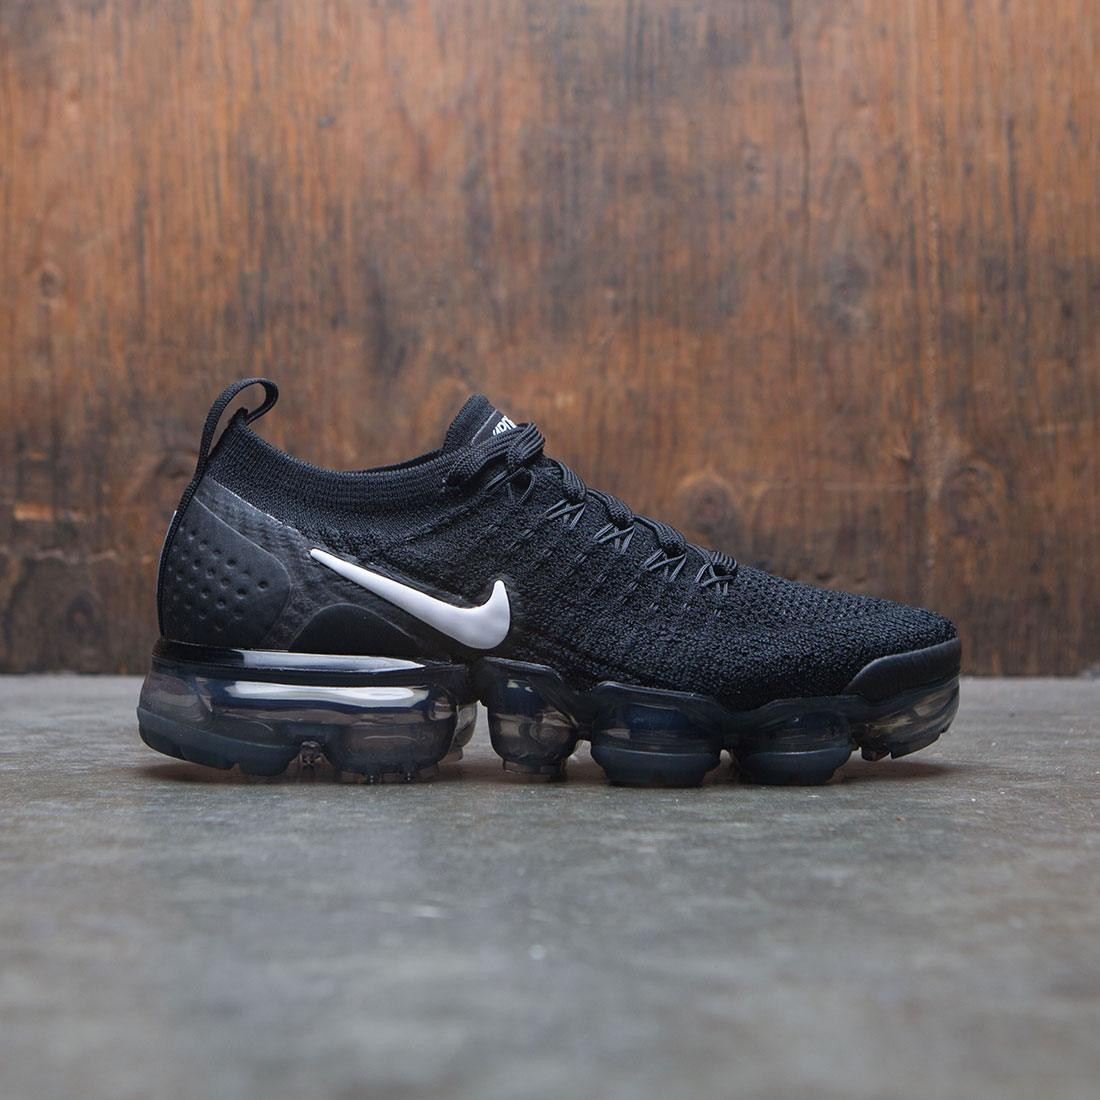 new concept df1e5 8fccb Nike Women Air Vapormax Flyknit 2 (black / white-dark grey-metallic silver)